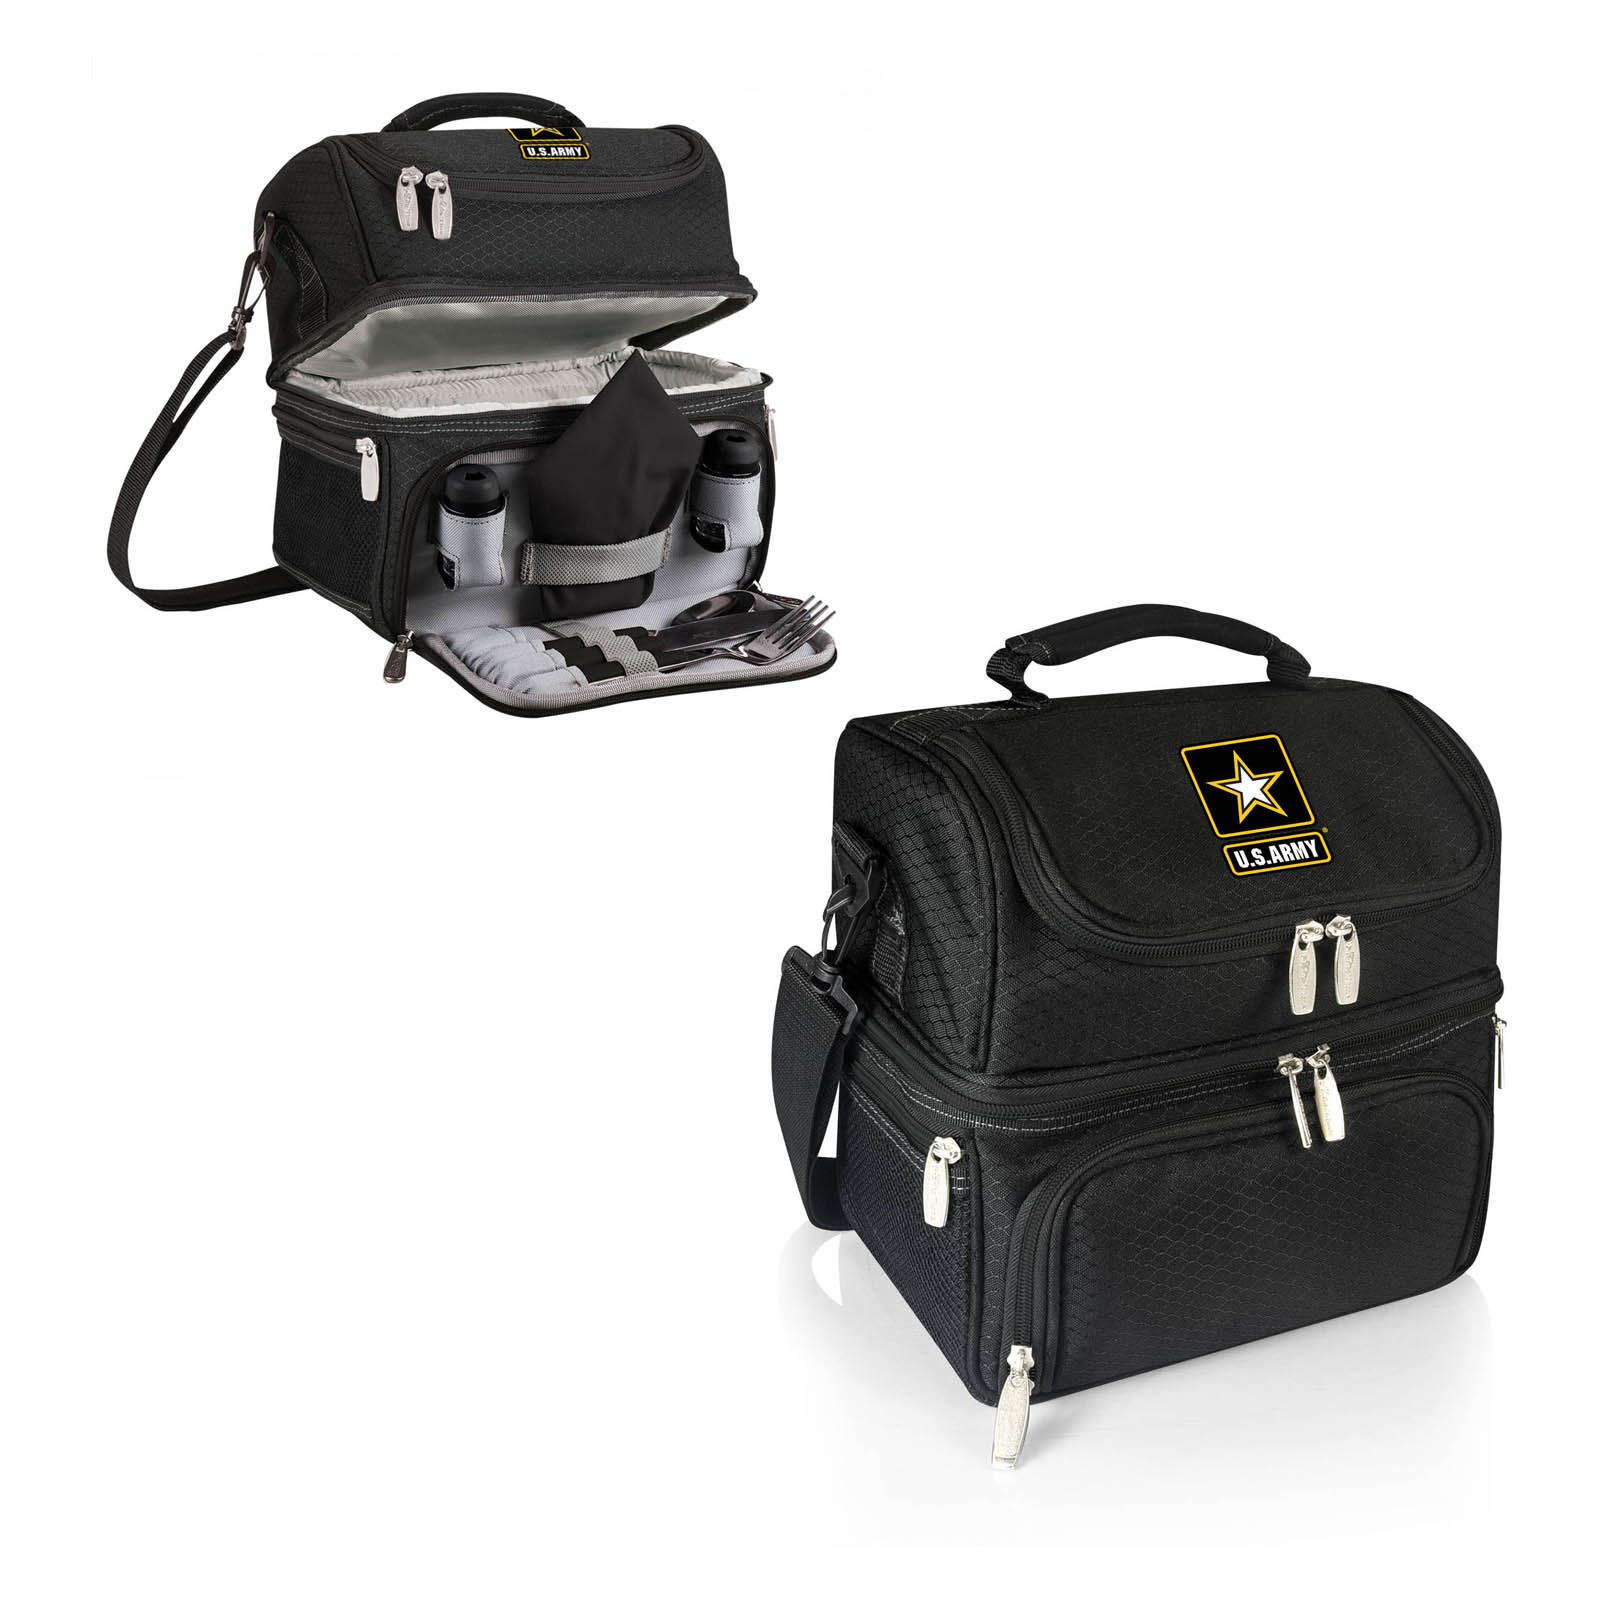 Picnic Time U.S. Army Pranzo Lunch Tote